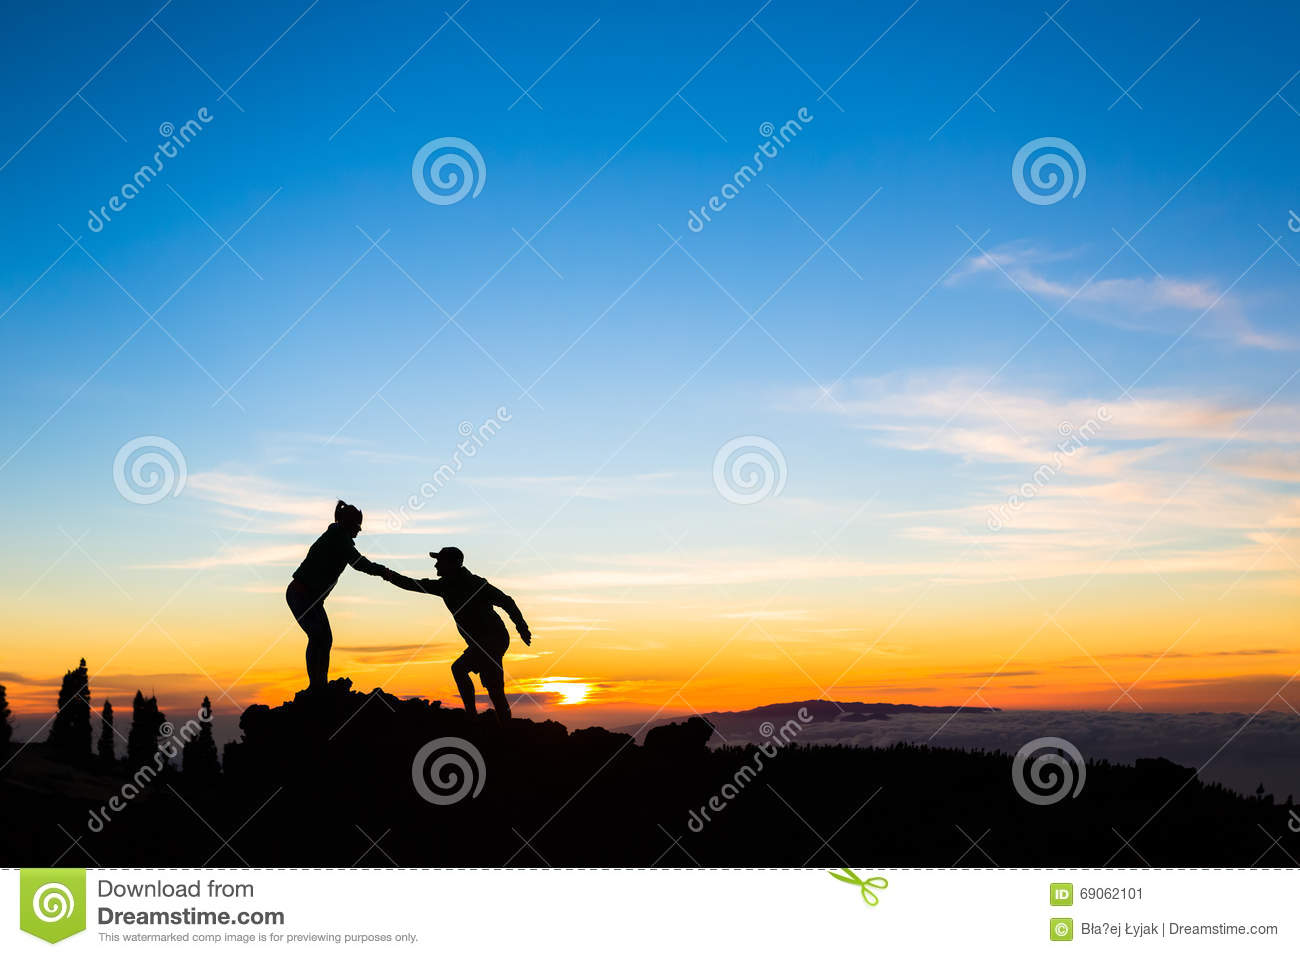 Download Teamwork Couple Climbing Helping Hand Stock Image - Image of adventure, hand: 69062101